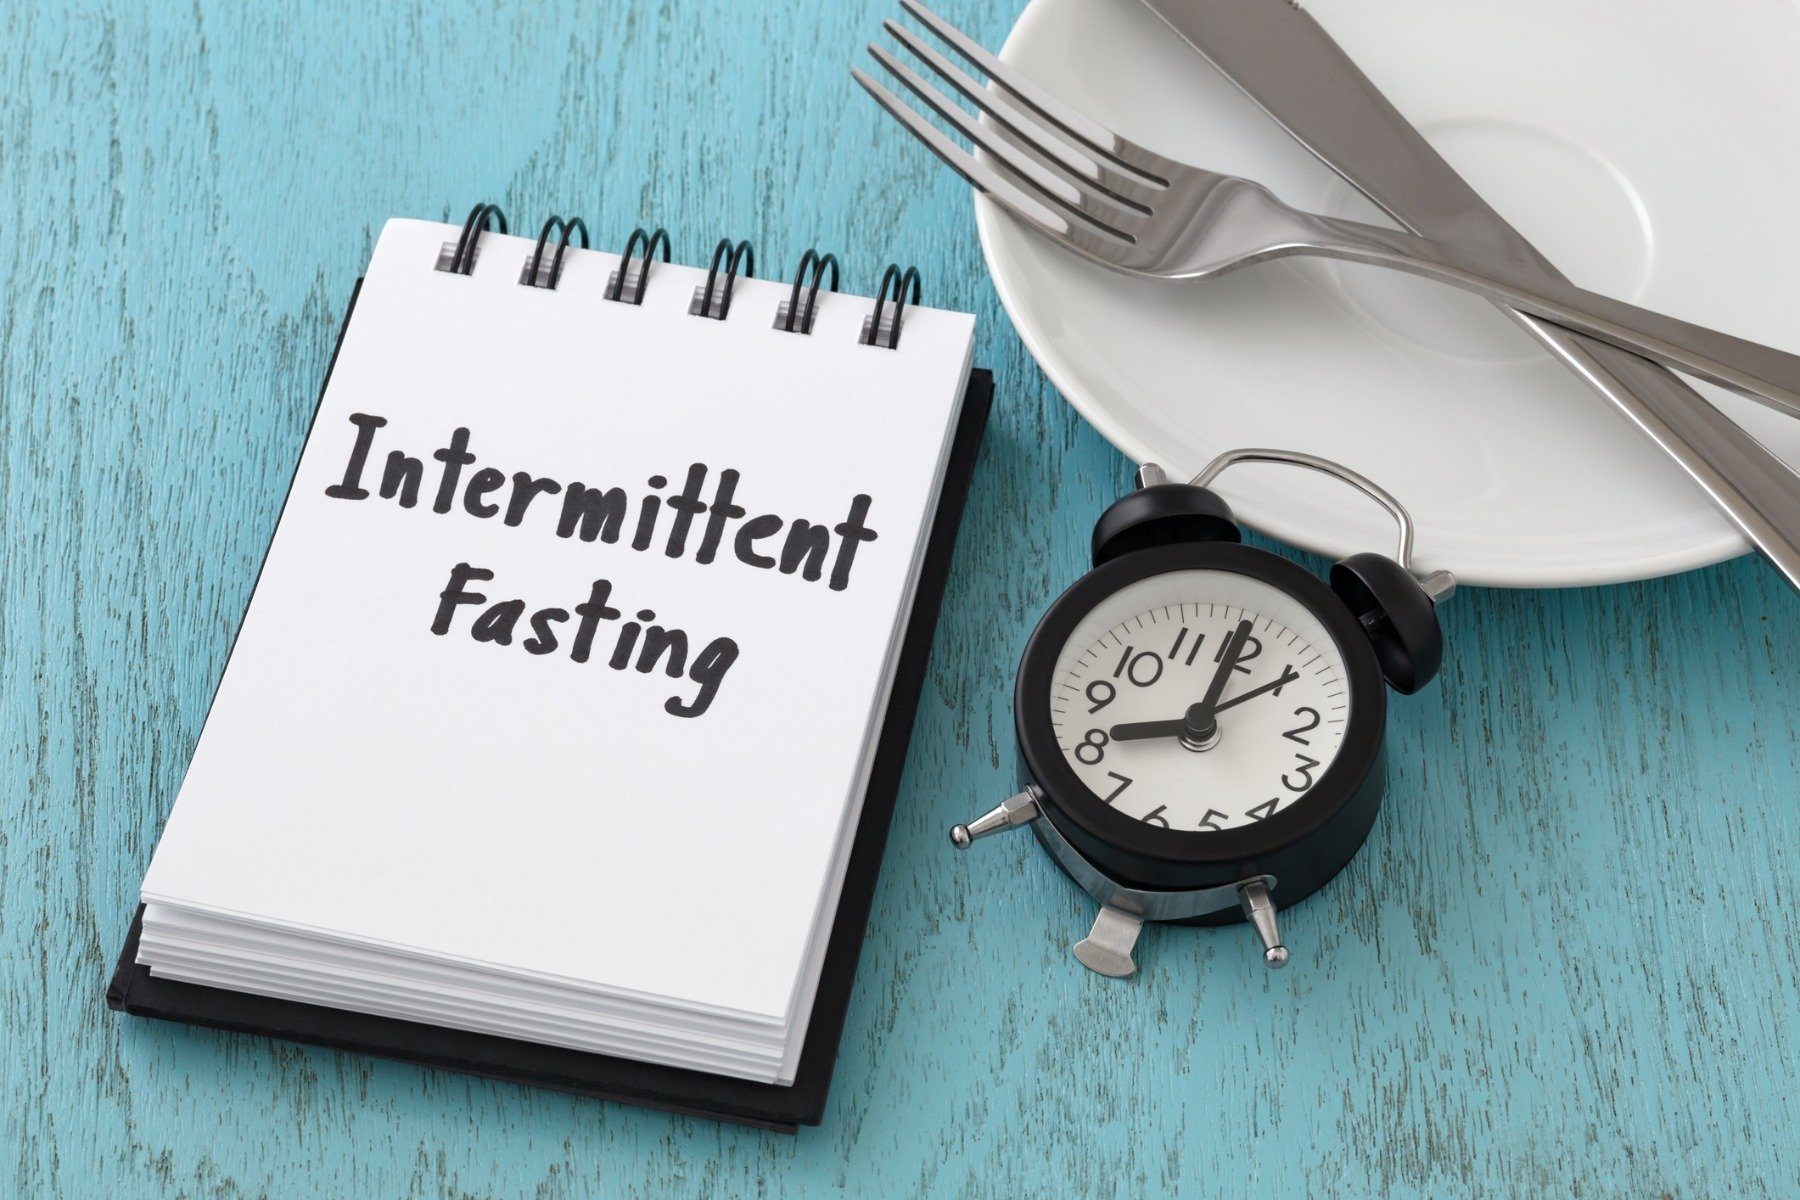 Postul intermitent, intermittent fasting IF